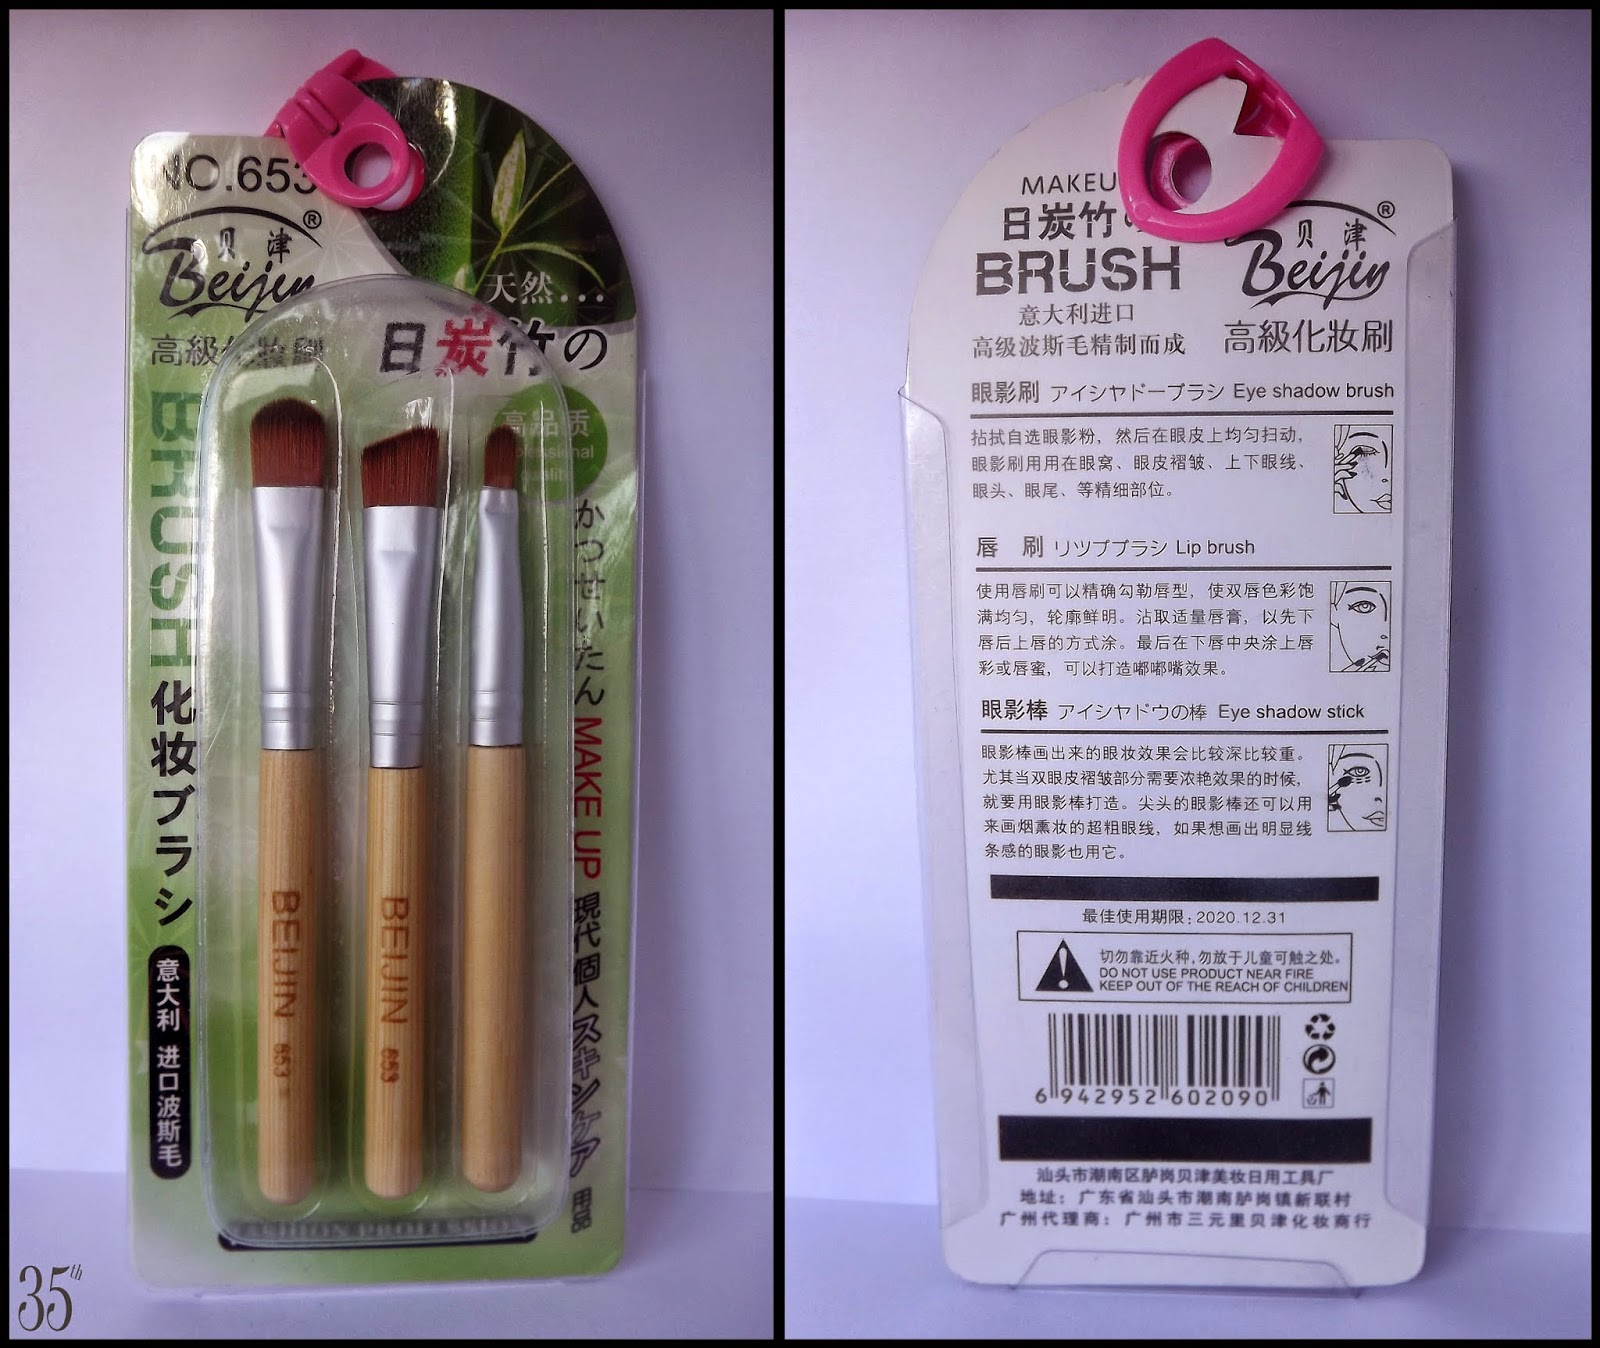 Beijin Make-up brushes